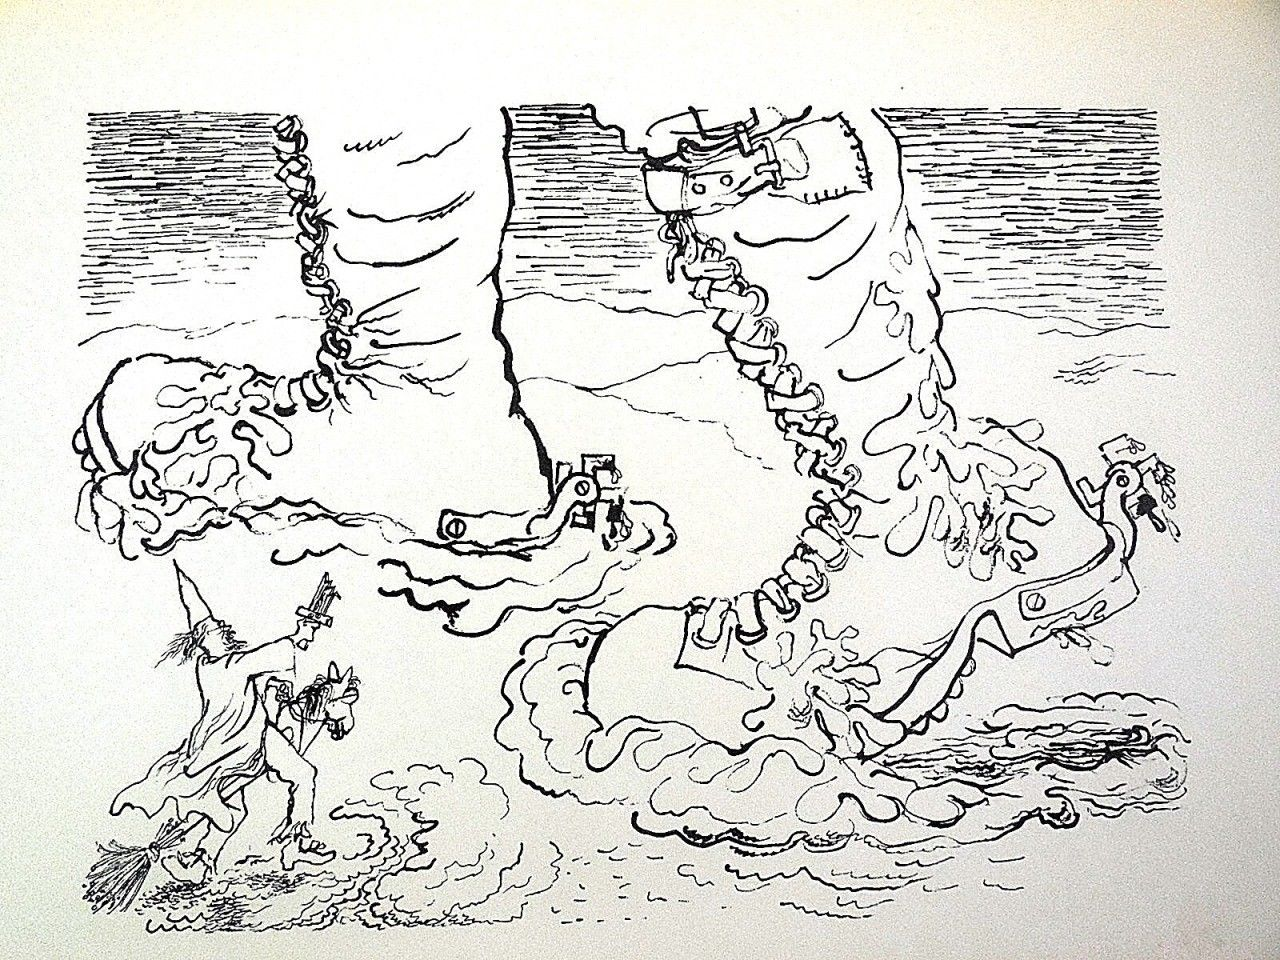 Old war boots. Lithograph by George Grosz 1936.